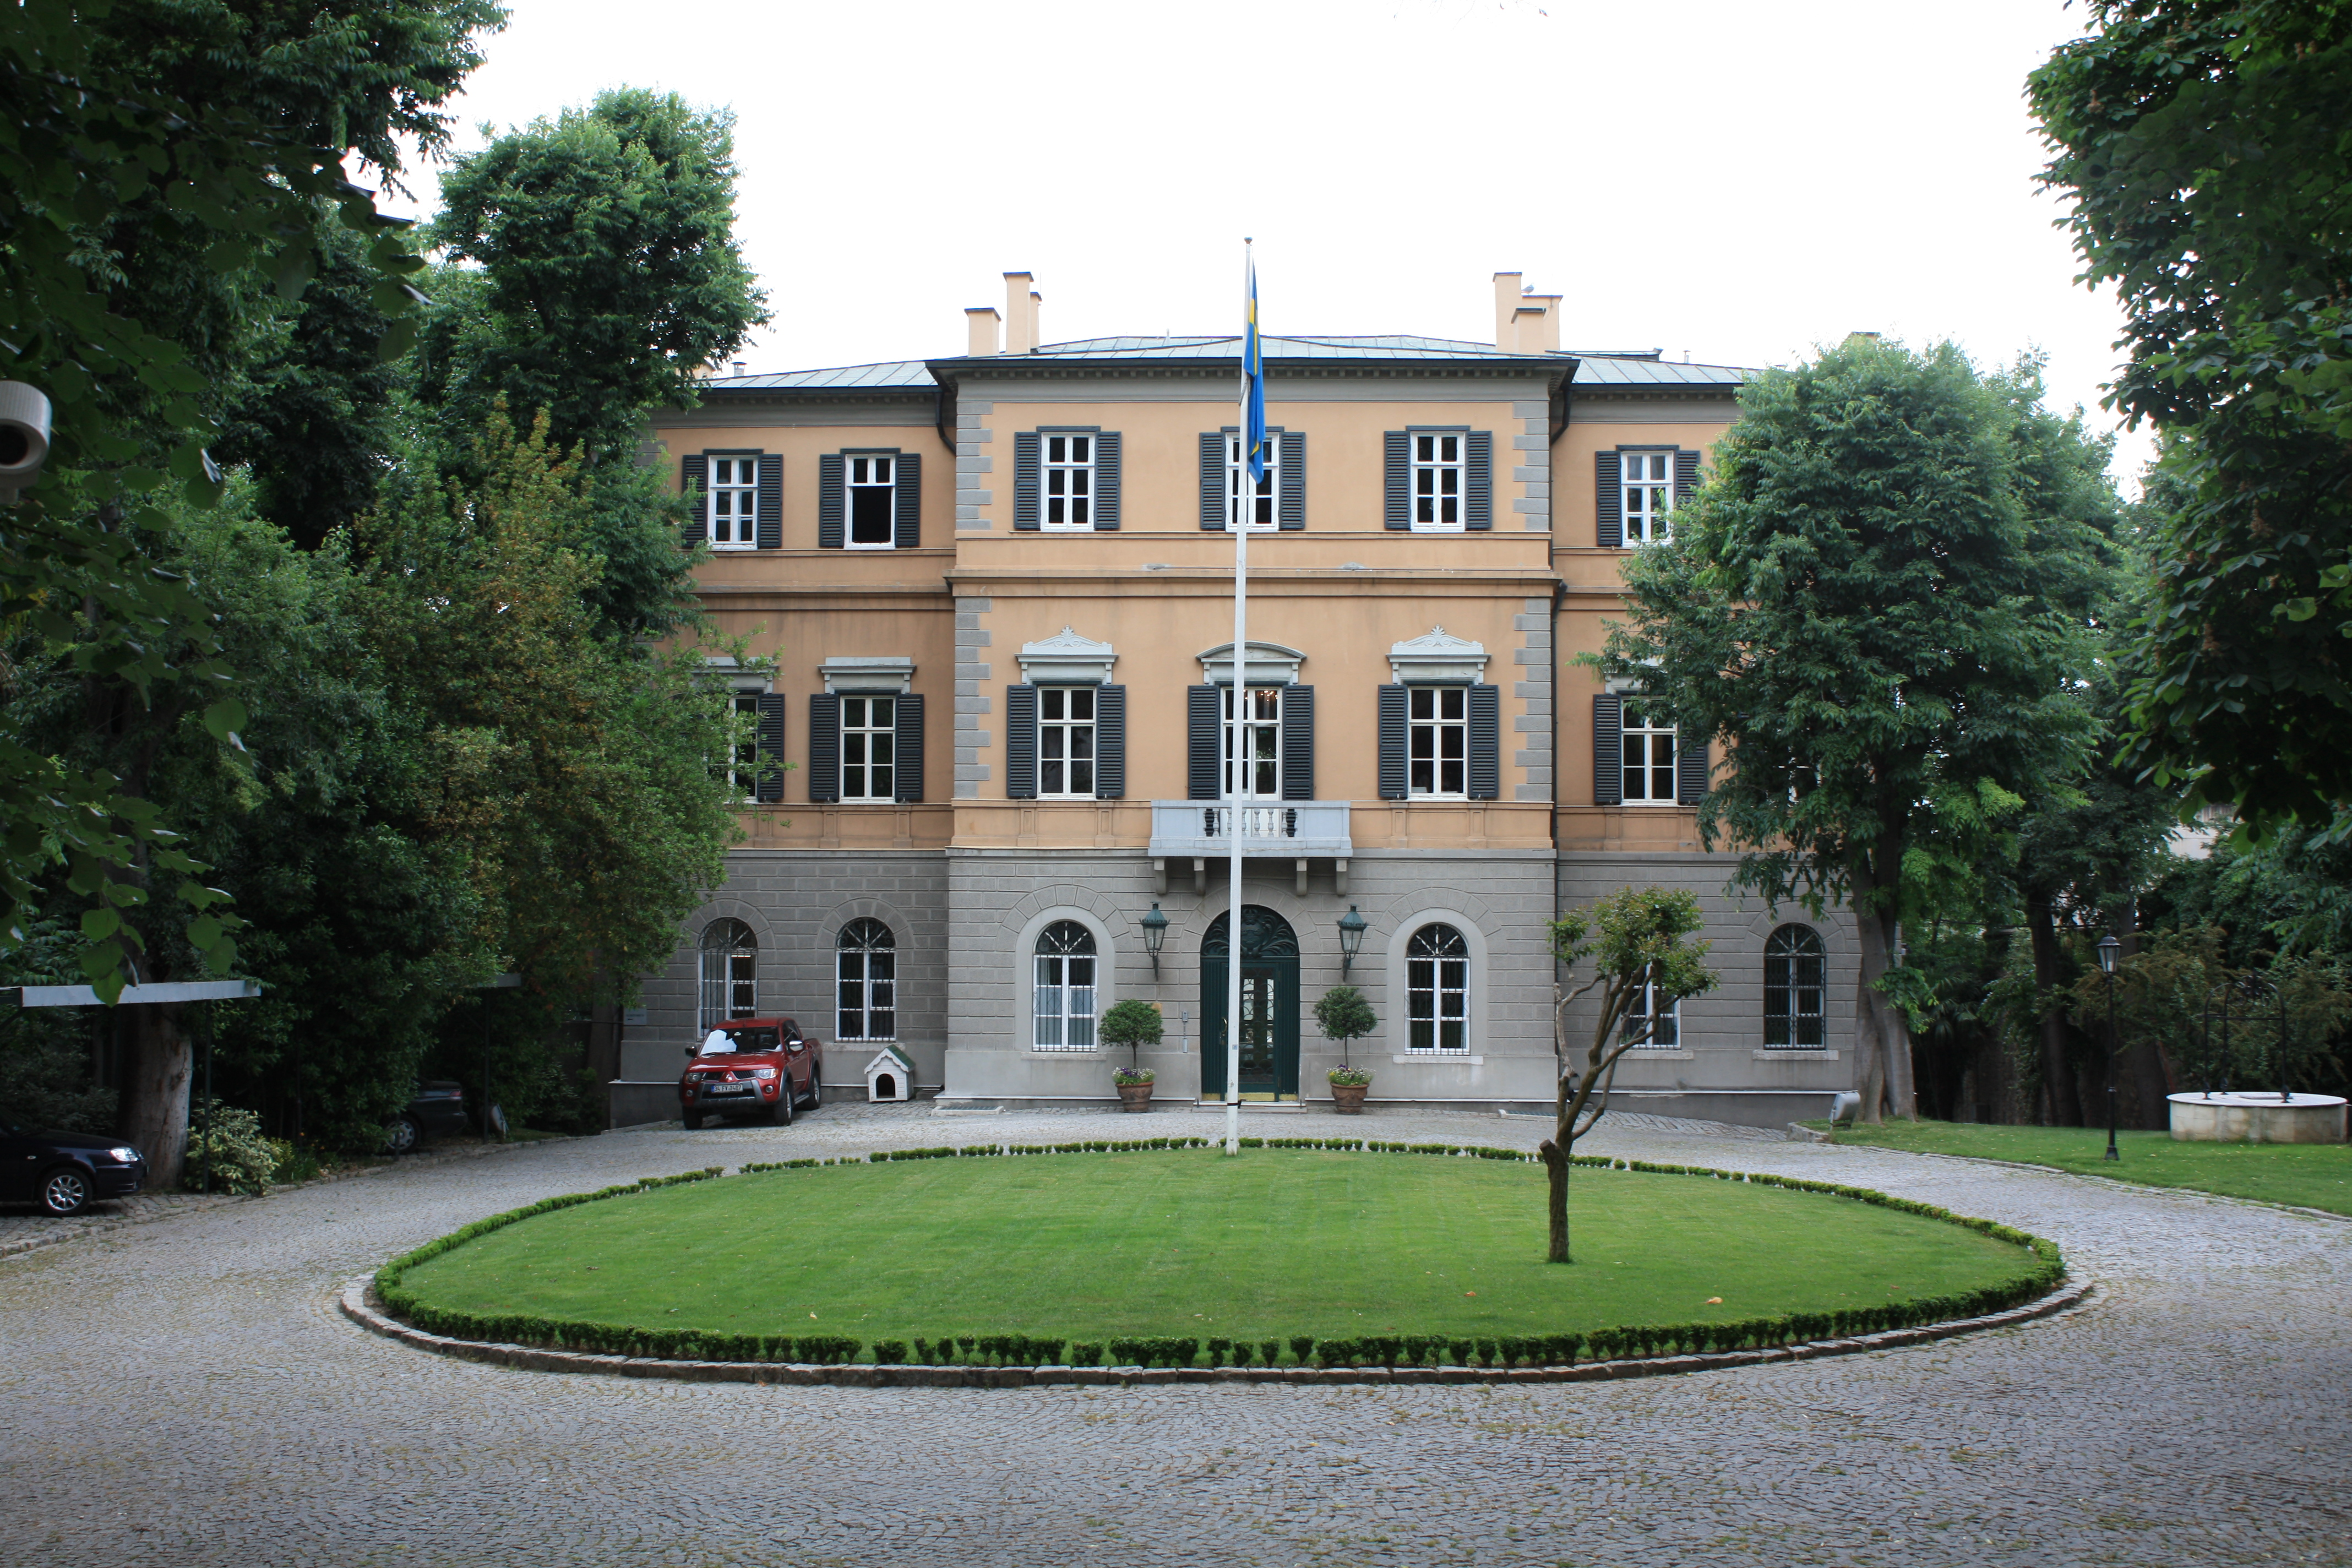 http://upload.wikimedia.org/wikipedia/commons/1/19/Swedish_Consulate,_Istanbul.jpg